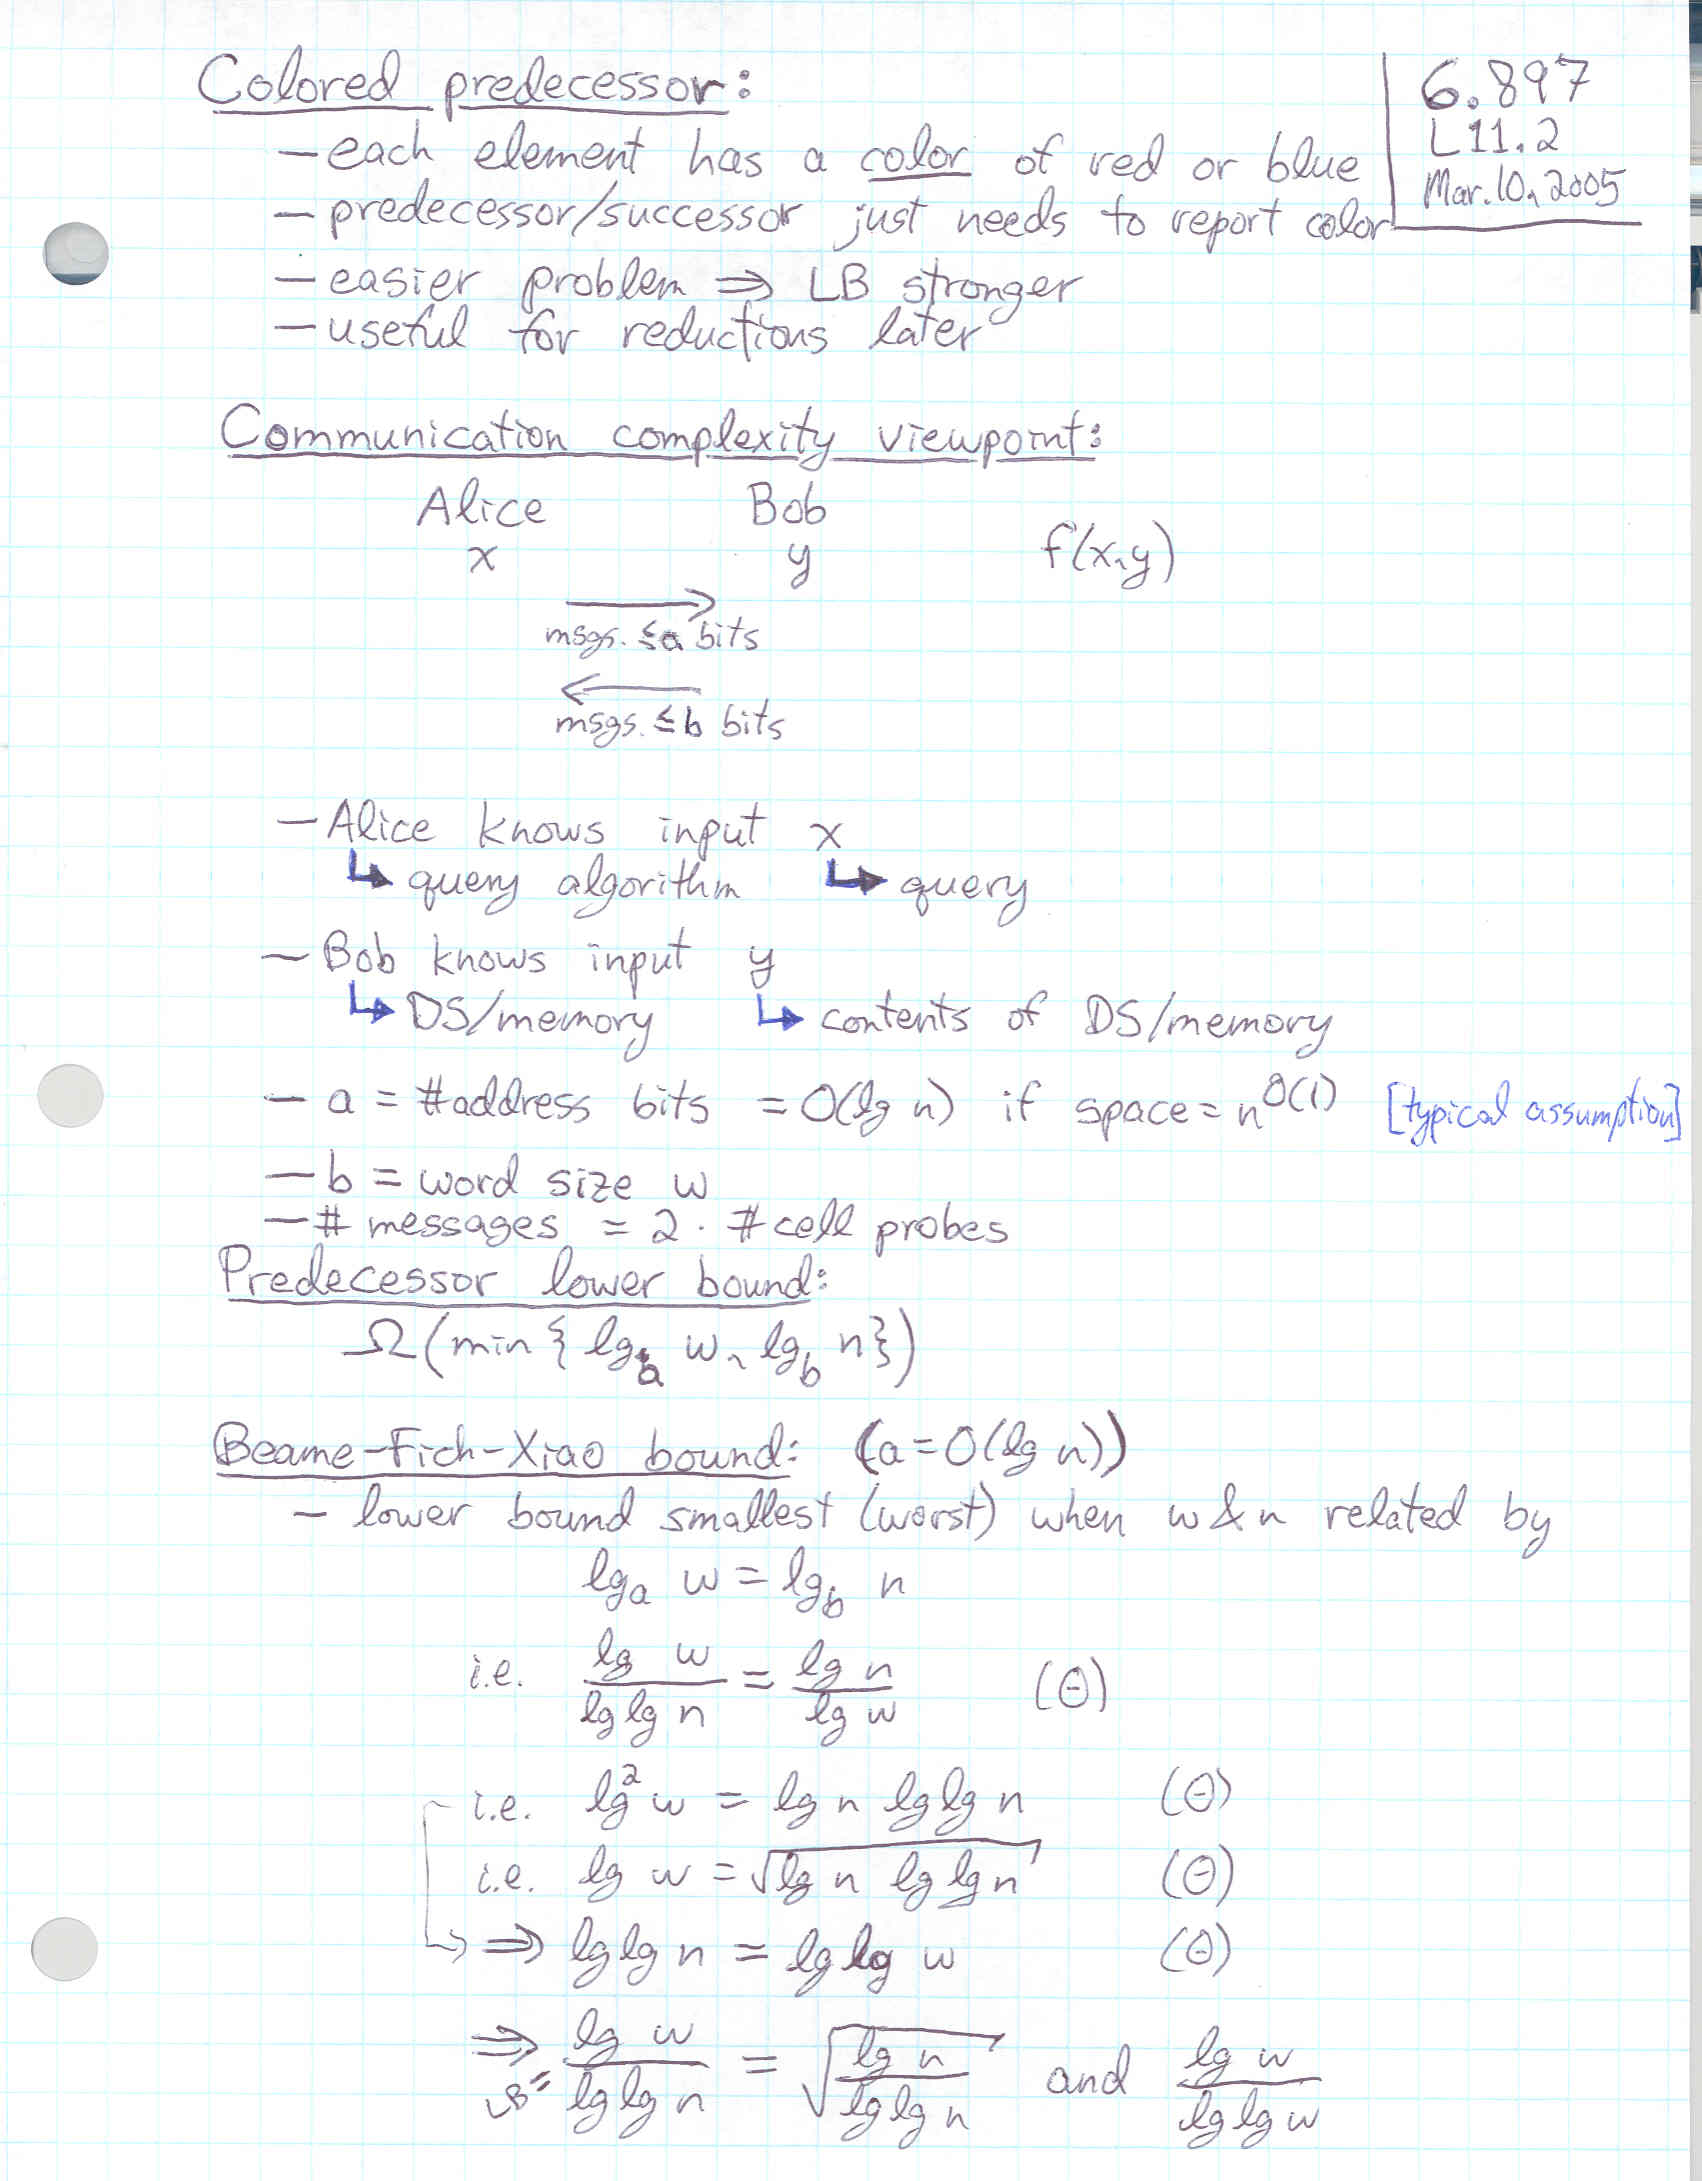 Lecture 11 page 2 at 200 DPI -- 6 897, Advanced Data